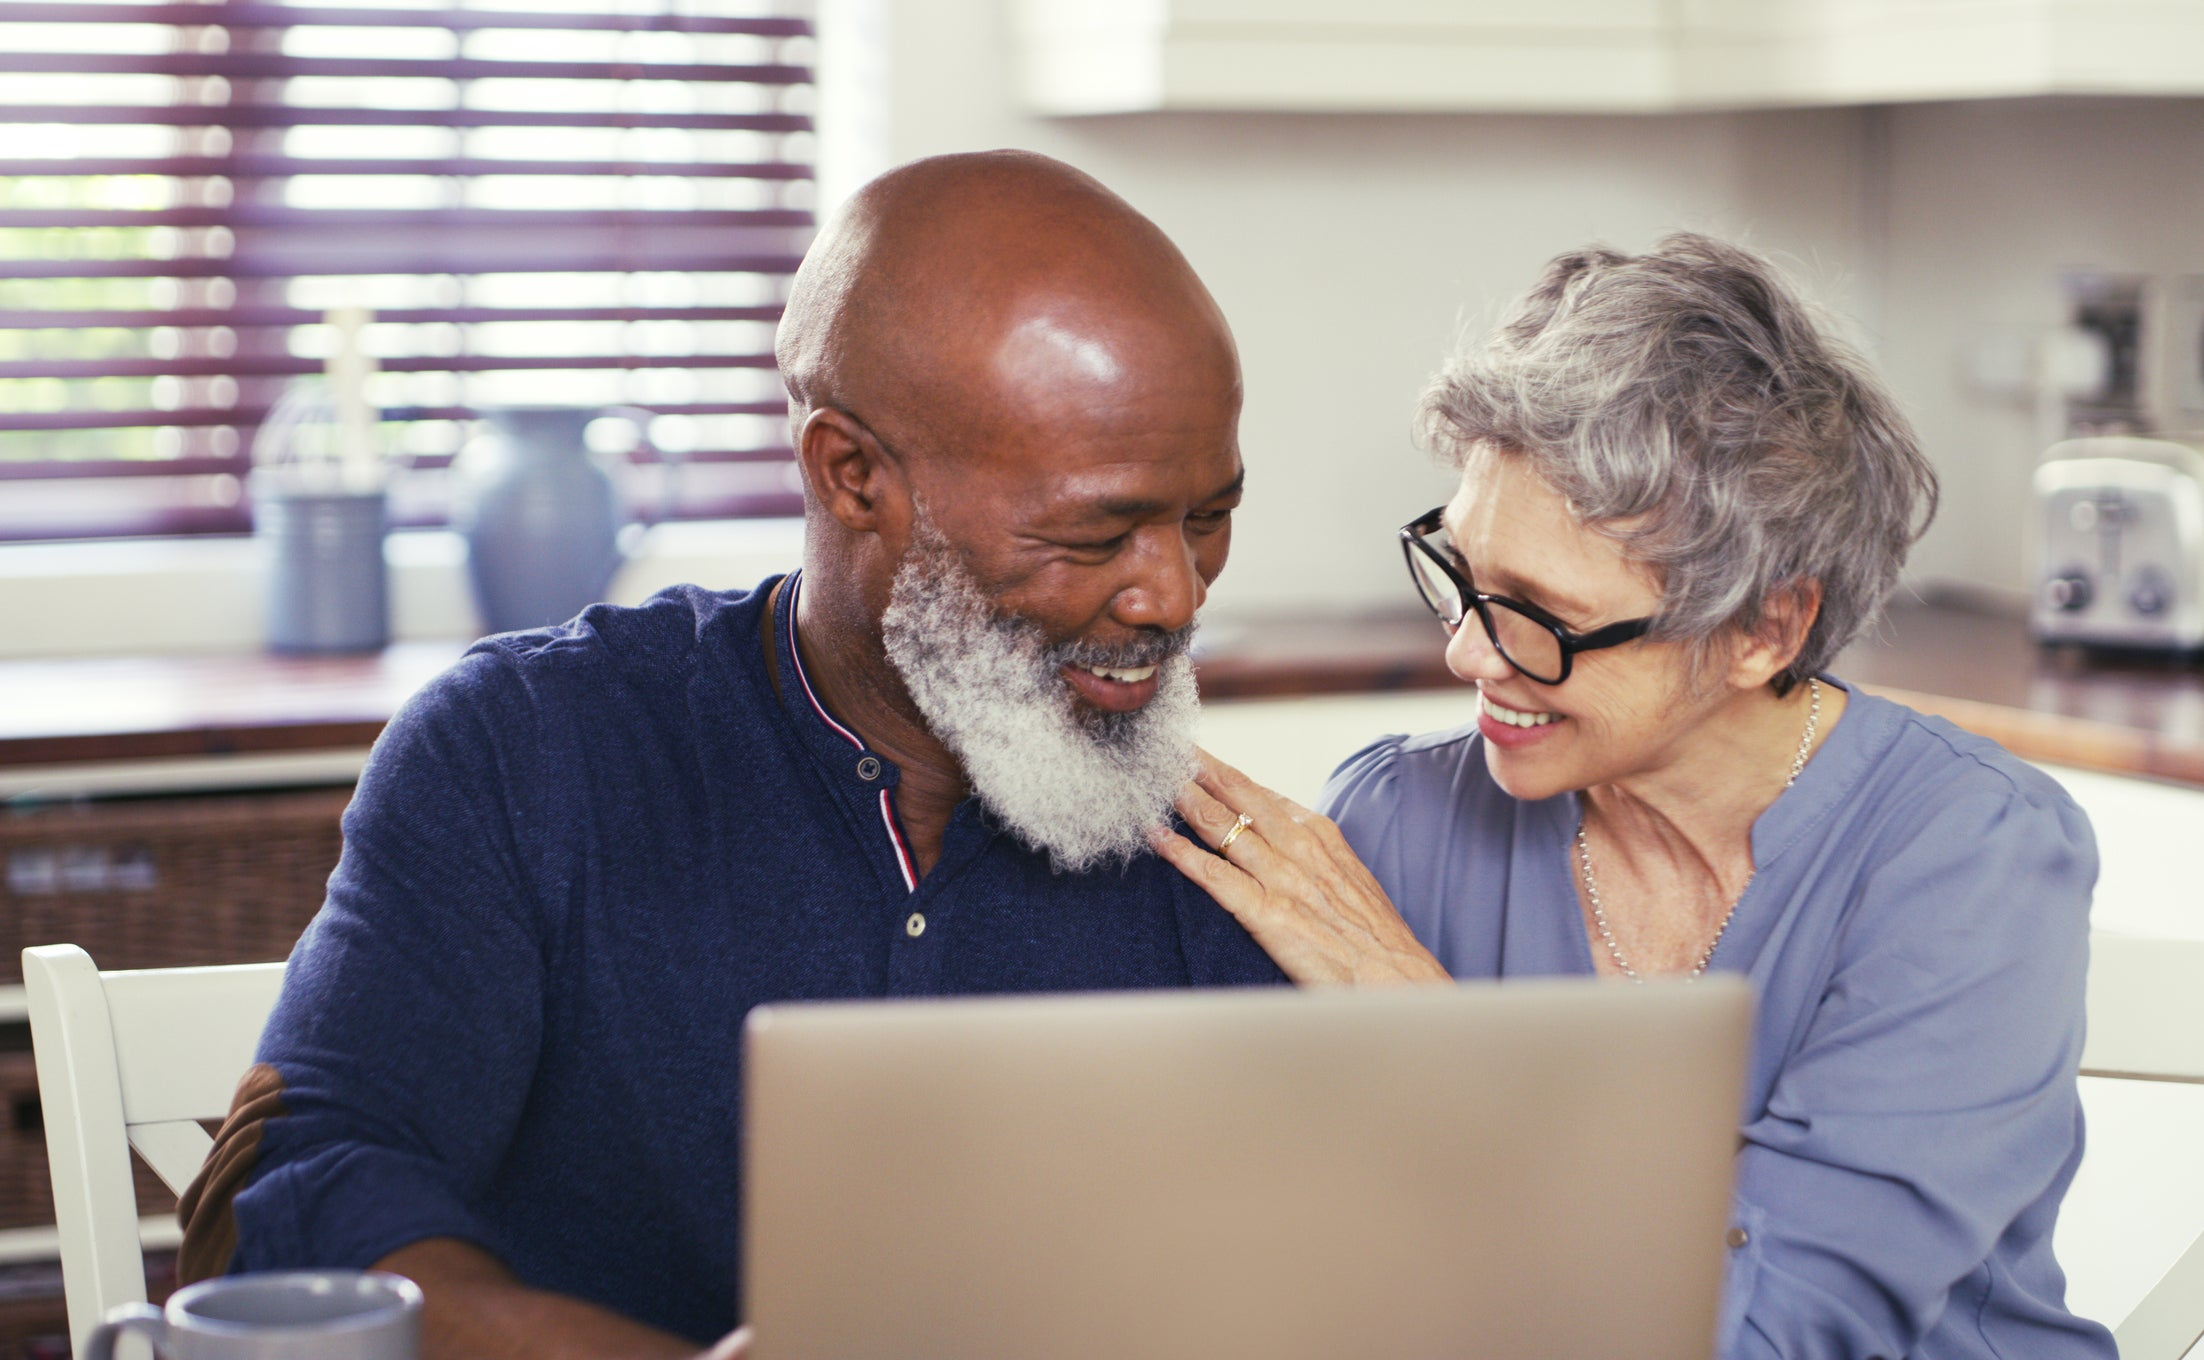 Are You on Track for the $3,895 Max Social Security Benefit?